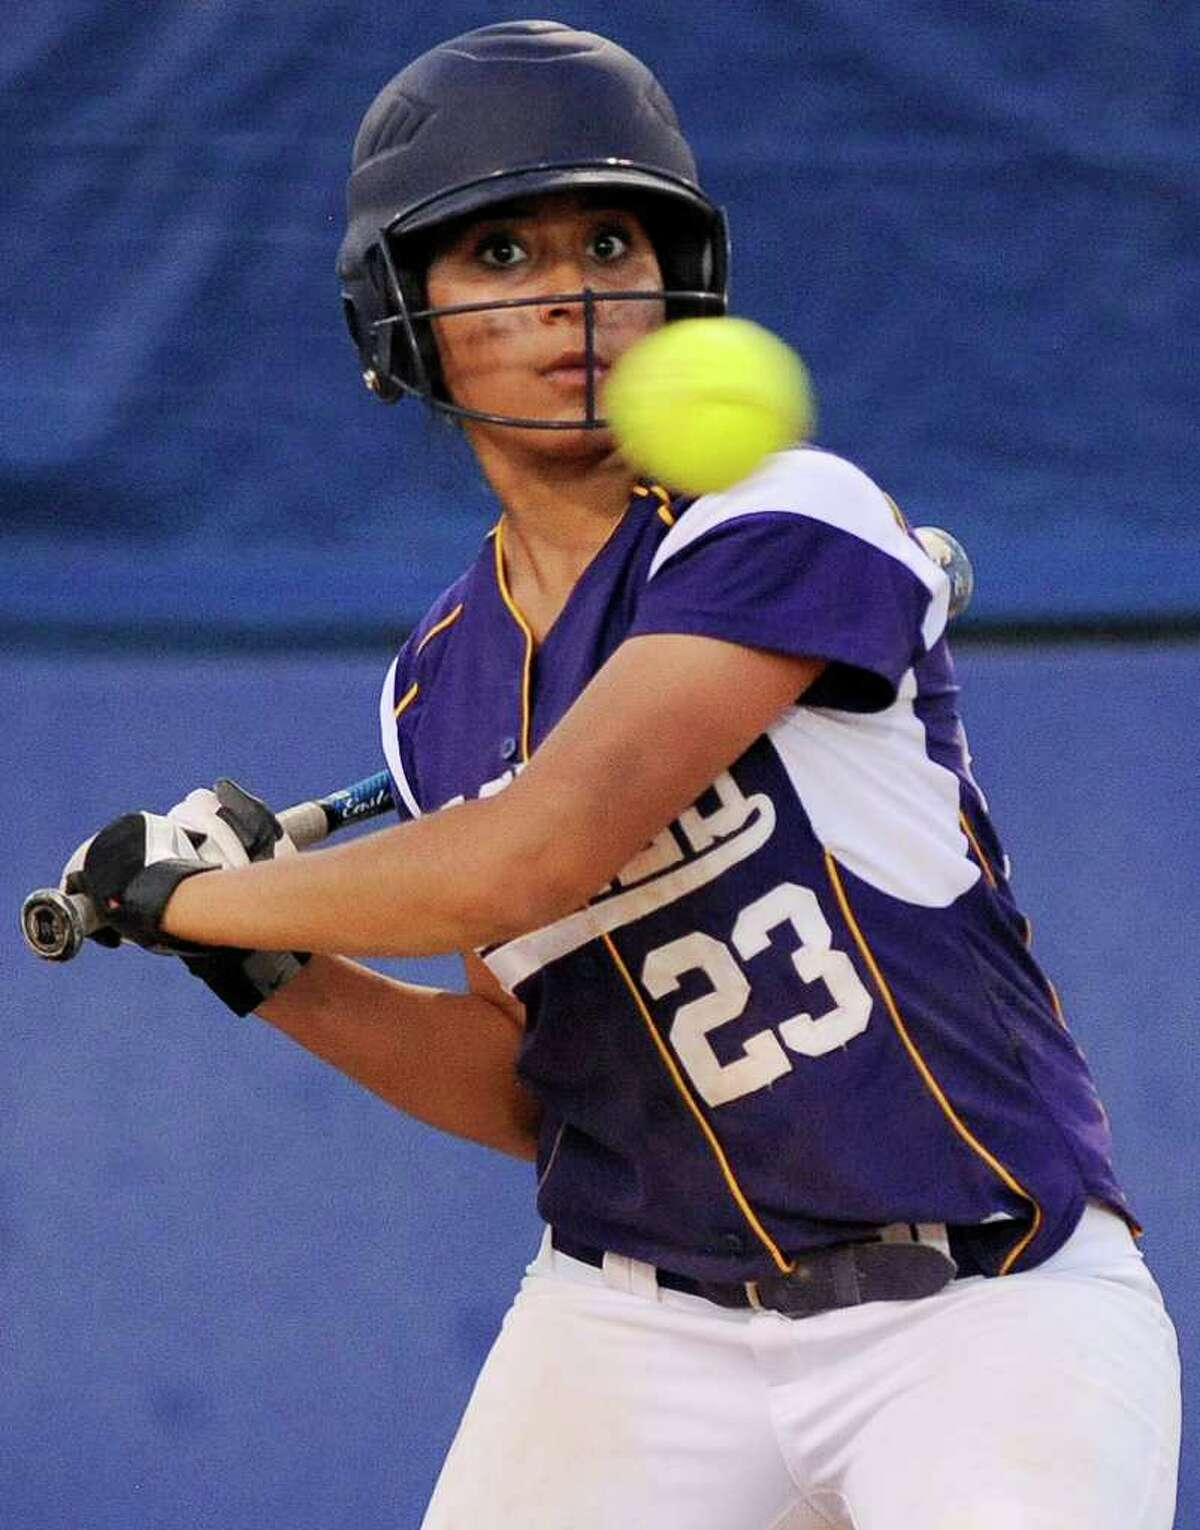 Brackenridge's Allie Castillo watches a high pitch sail by during a District 29-4A softball game against Southside, Monday, April 2, 2012, at the SAISD Sports Complex.